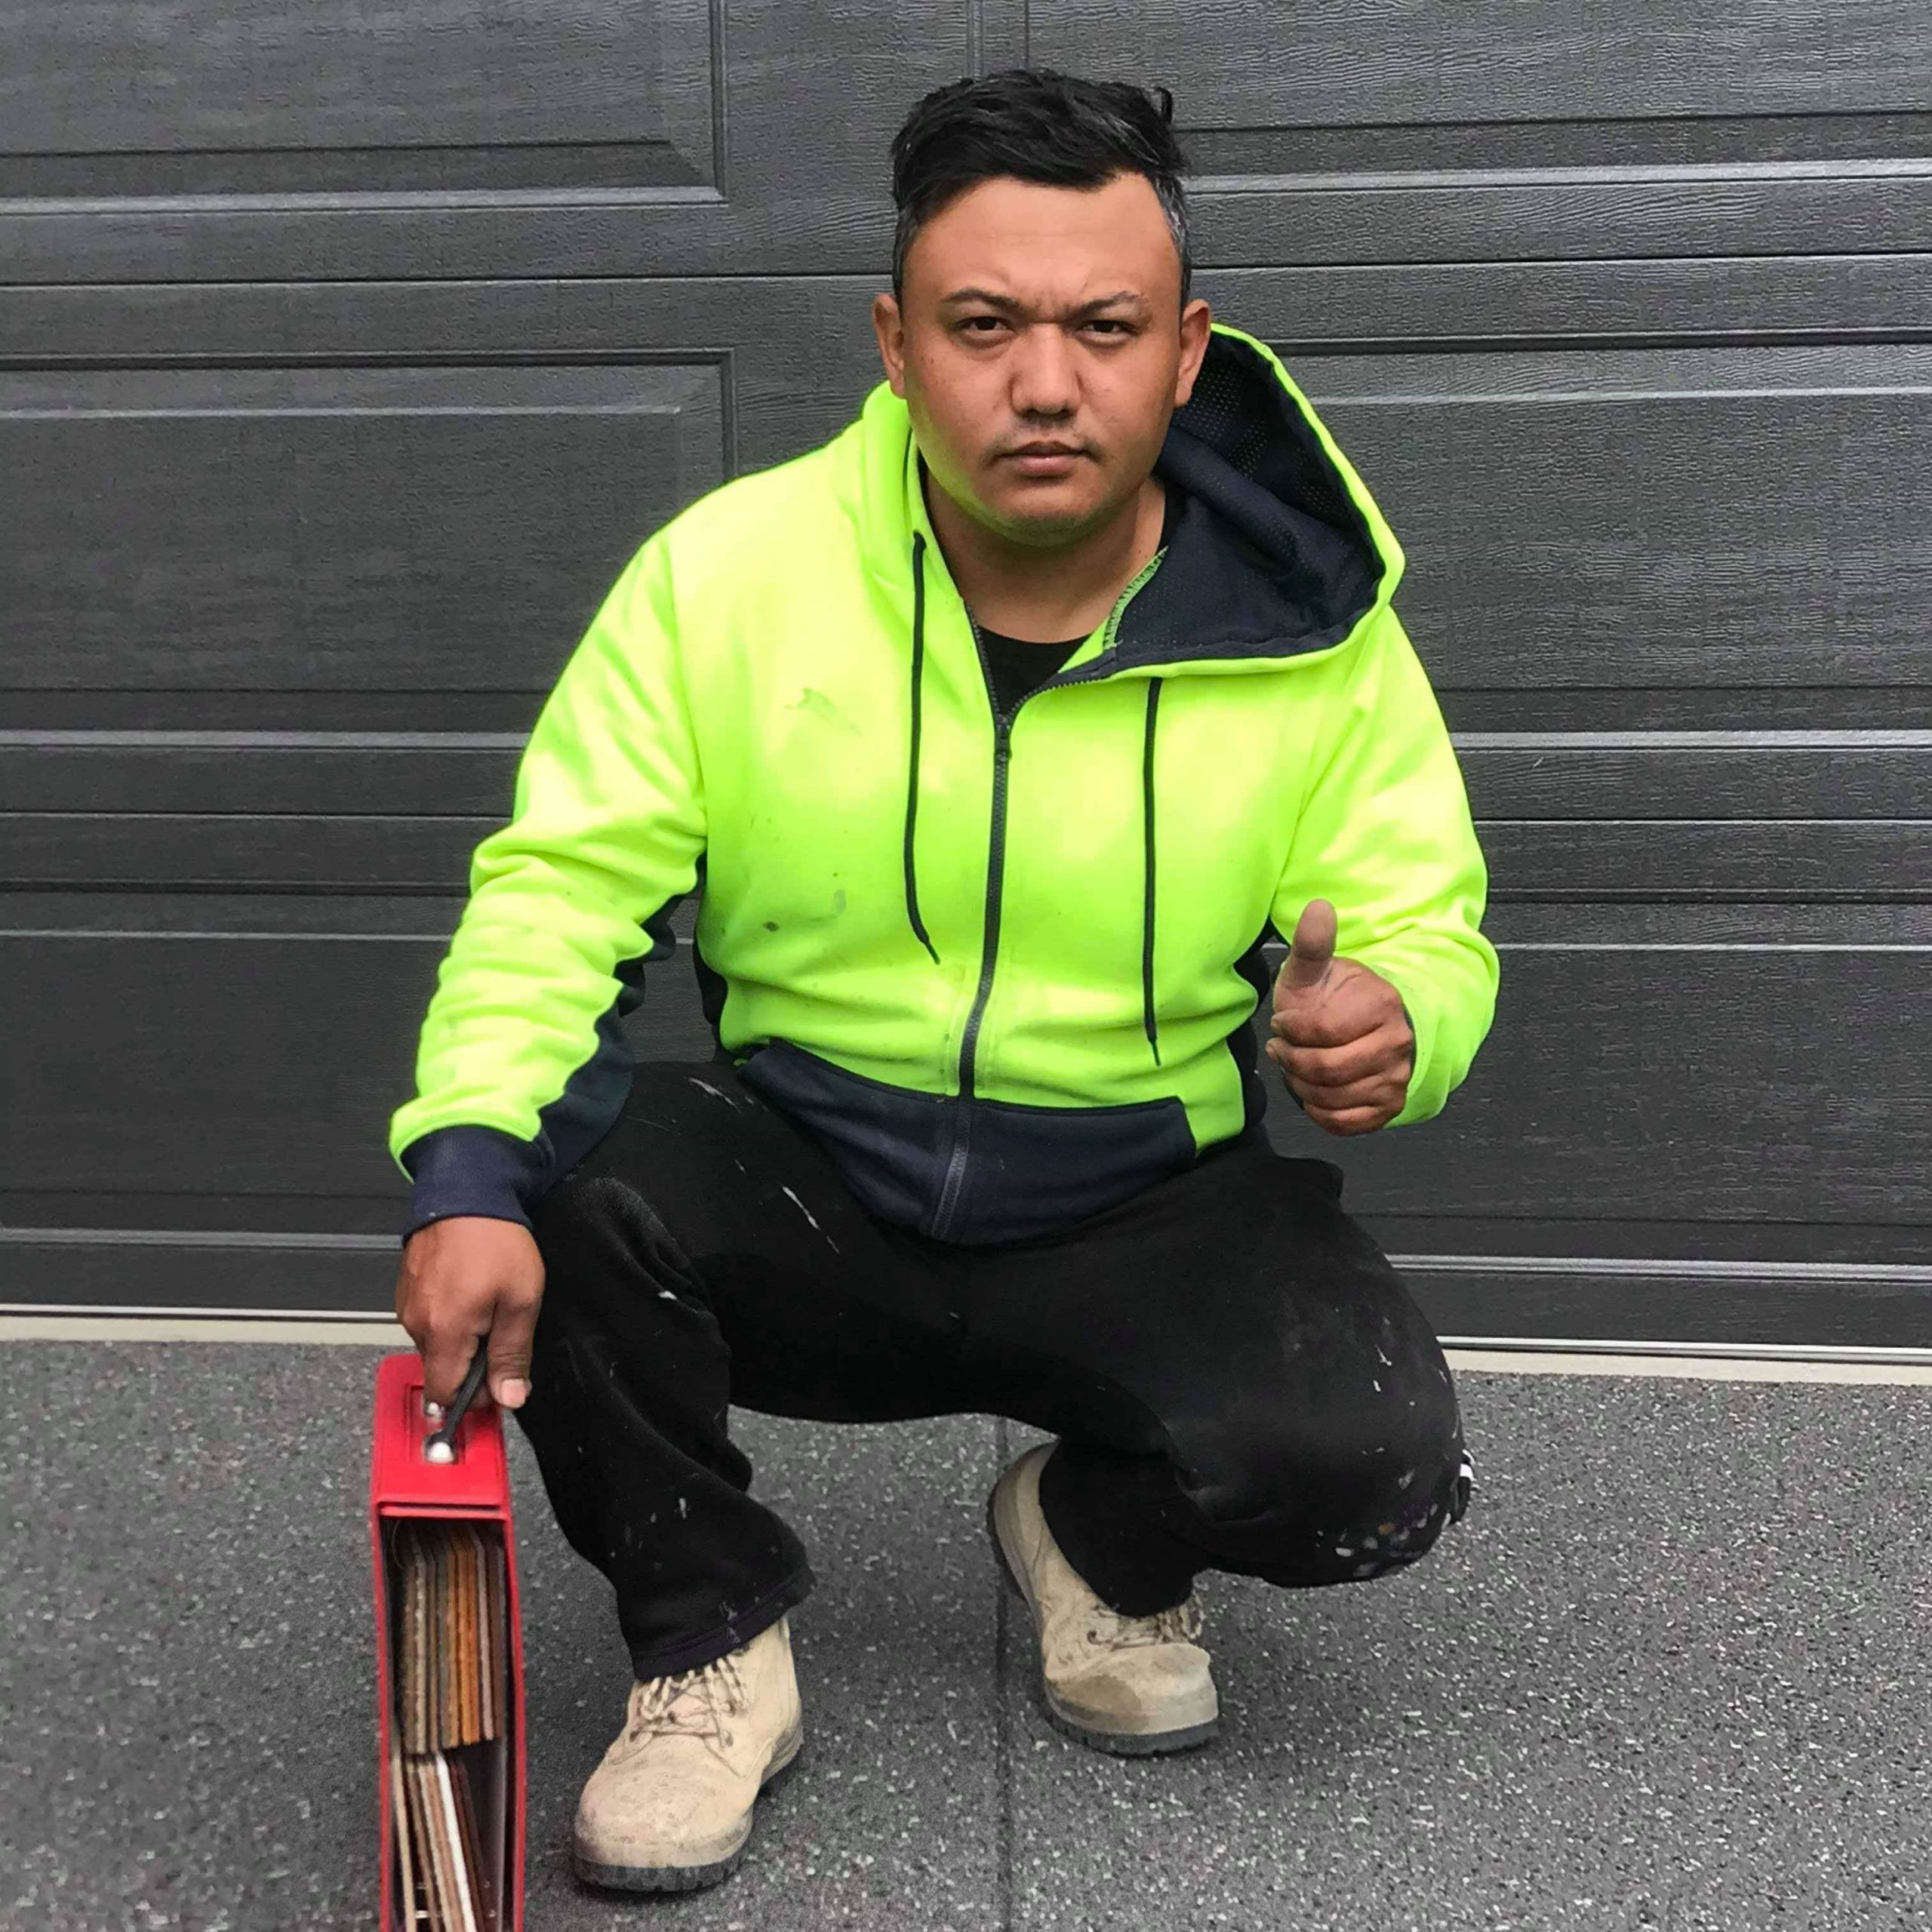 Photo of Ali Jasonn, Co-owner of Home Concrete Transformers and flooring expert, kneeling and wearing hi-vis, holding a flooring sample book and giving a thumbs up.